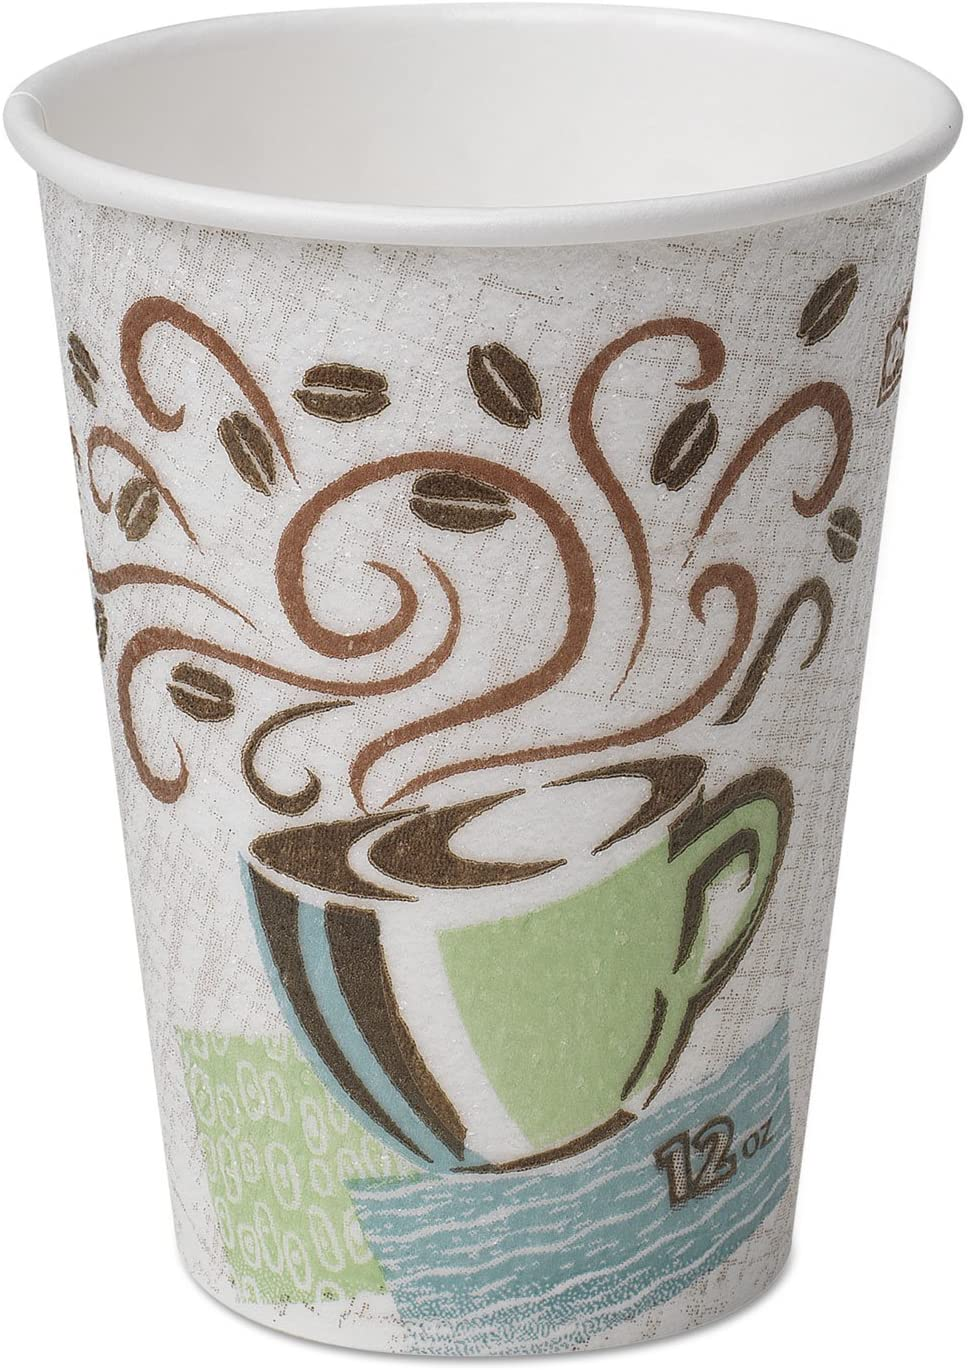 Dixie Hot Cups Paper Popular products 16 oz. Spring new work Coffee Design 500 Dreams Carton